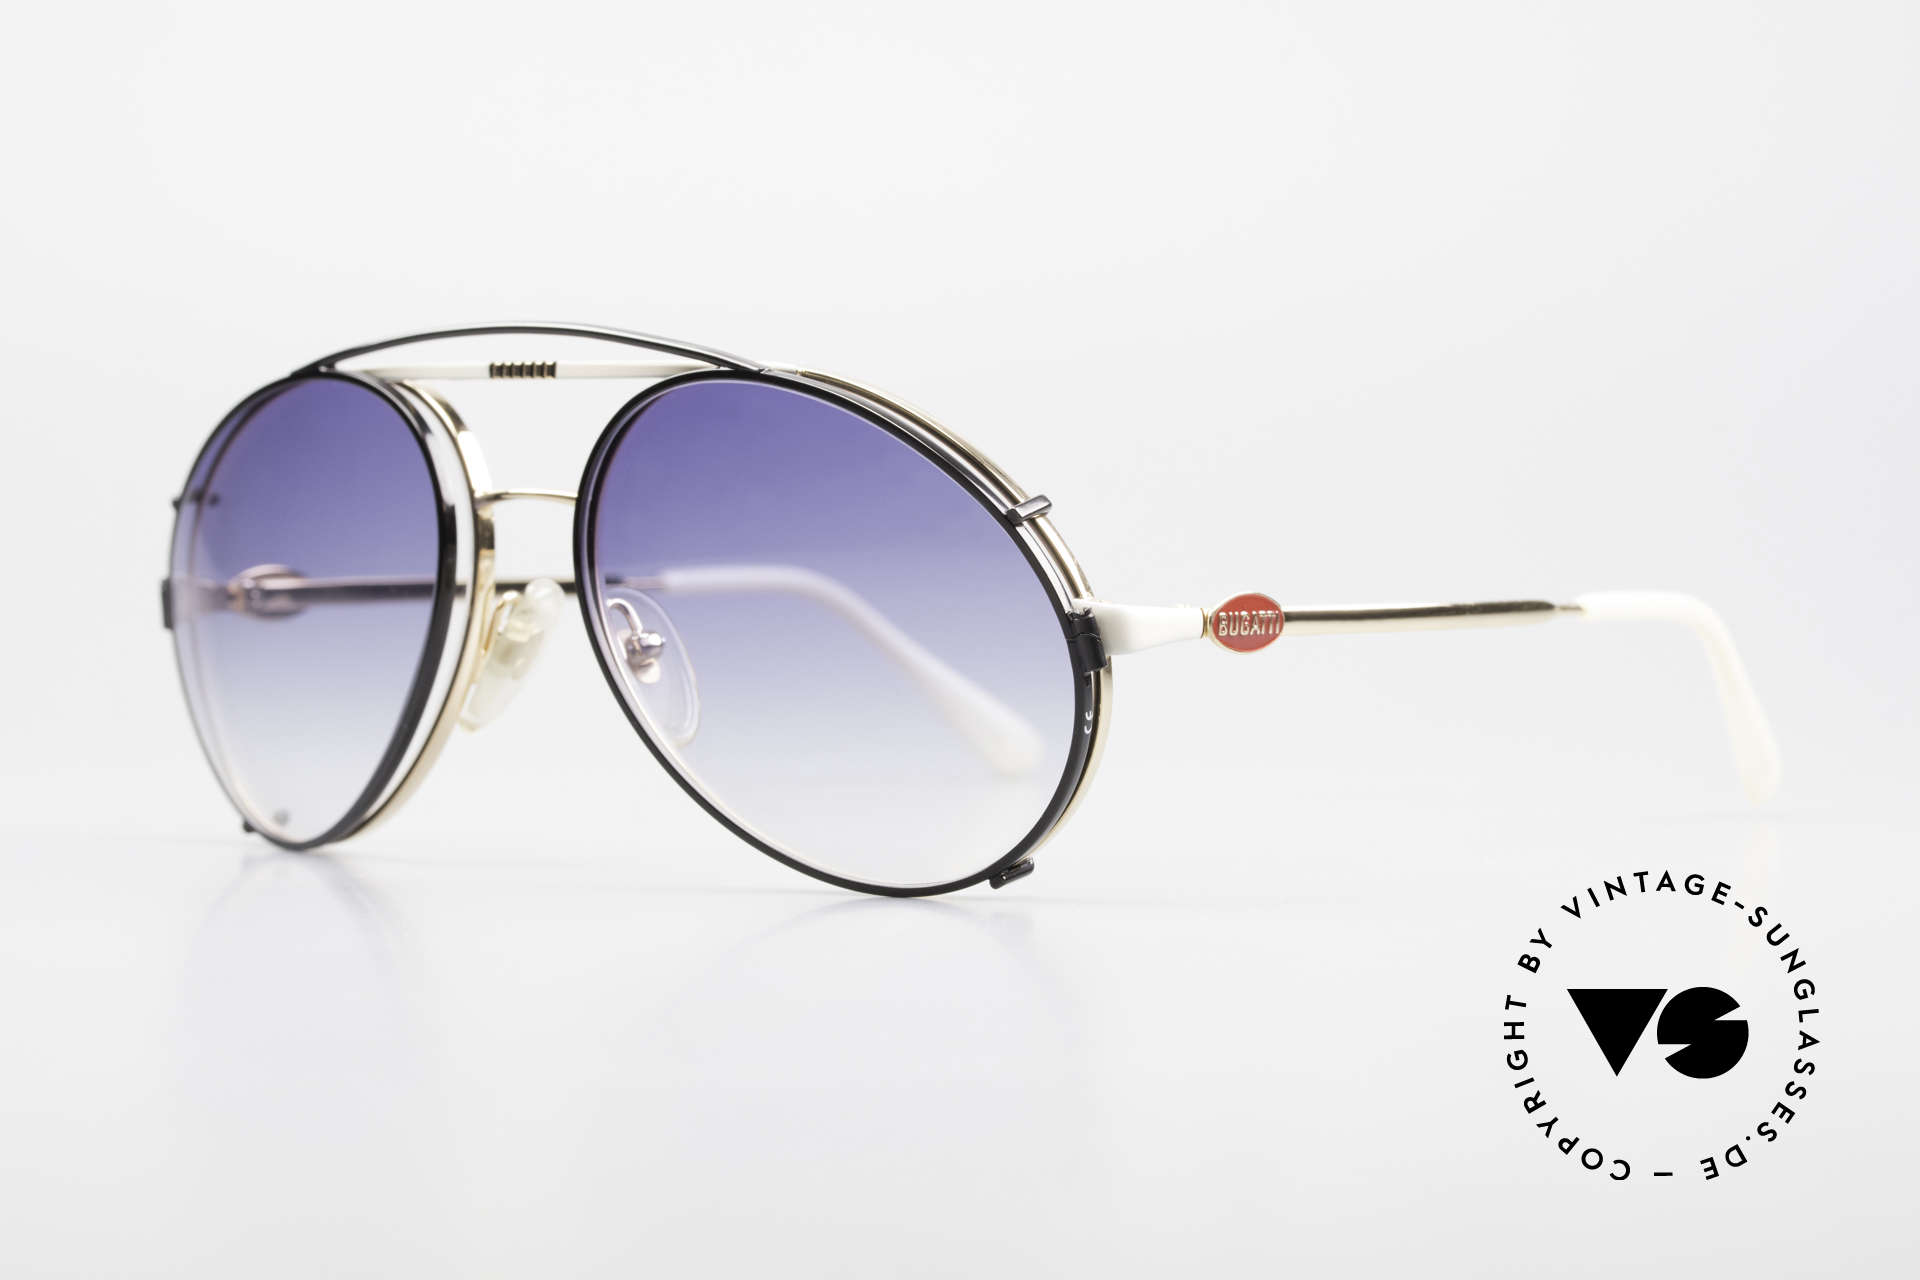 Bugatti 64319 80's Sunglasses With Clip On, best craftsmanship & very pleasant to wear, Made for Men